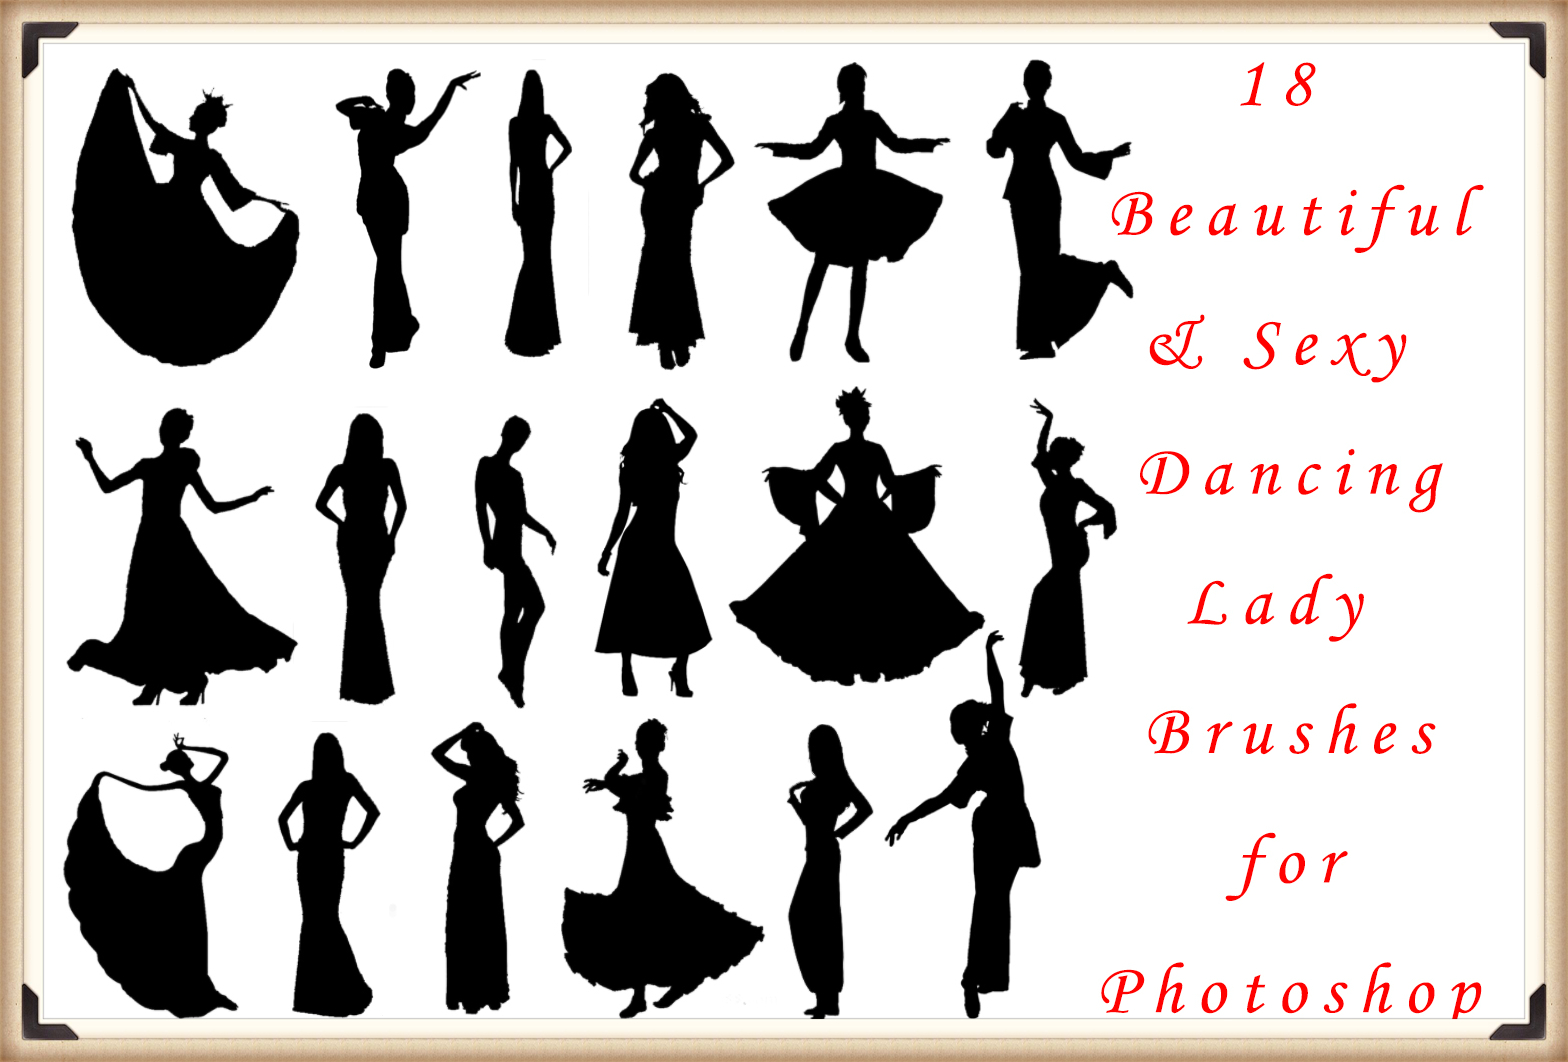 18 Beautiful and Sexy Dancing Lady Brushes